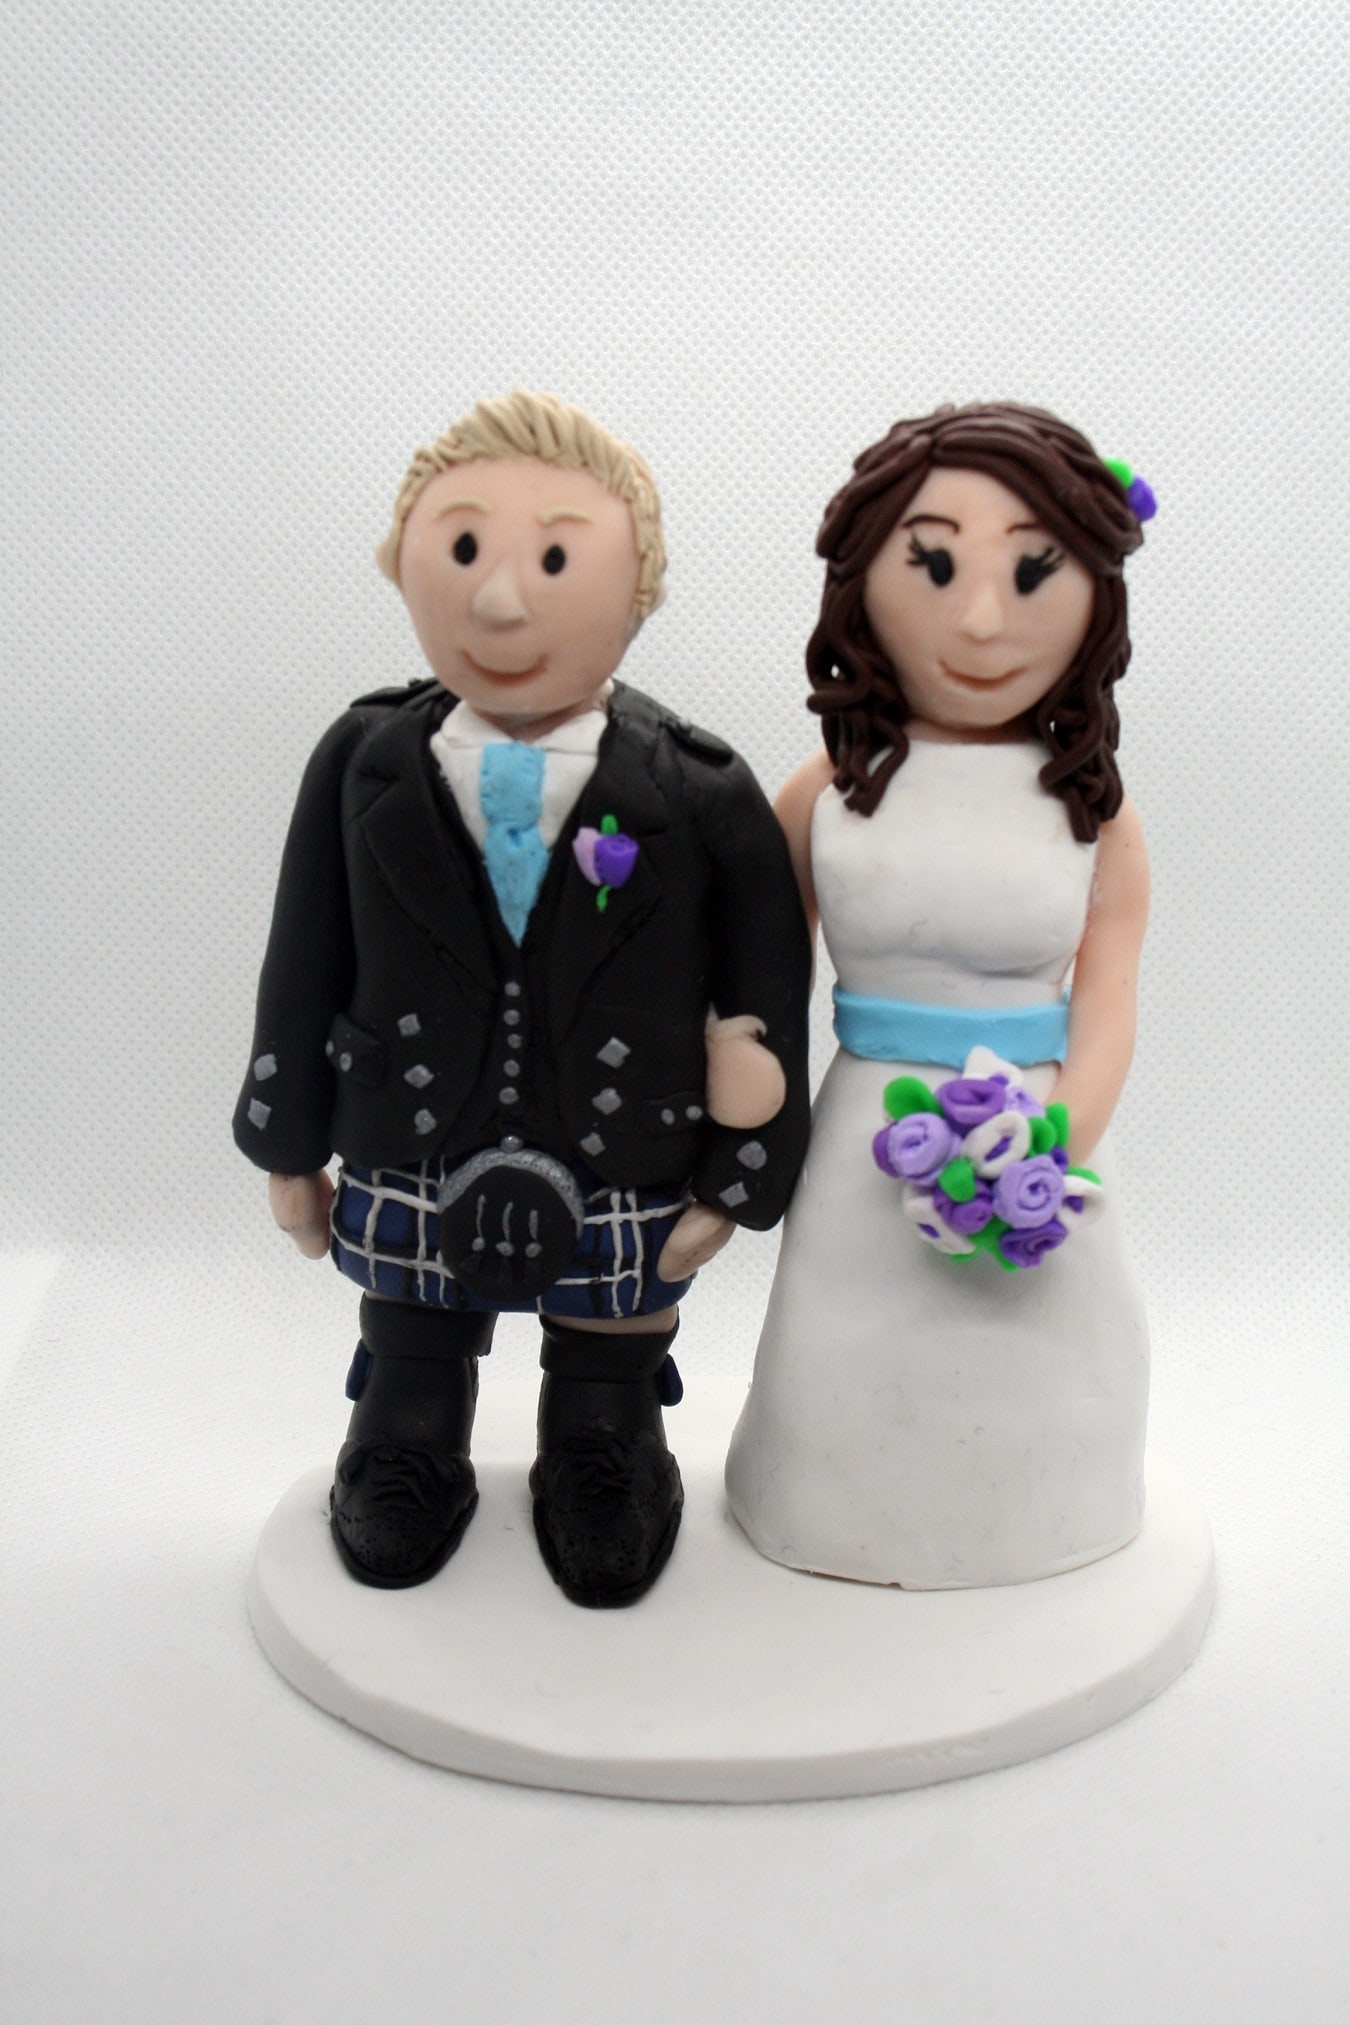 all-sorts-clay-scottish-wedding-cake-toppers-bride-groom